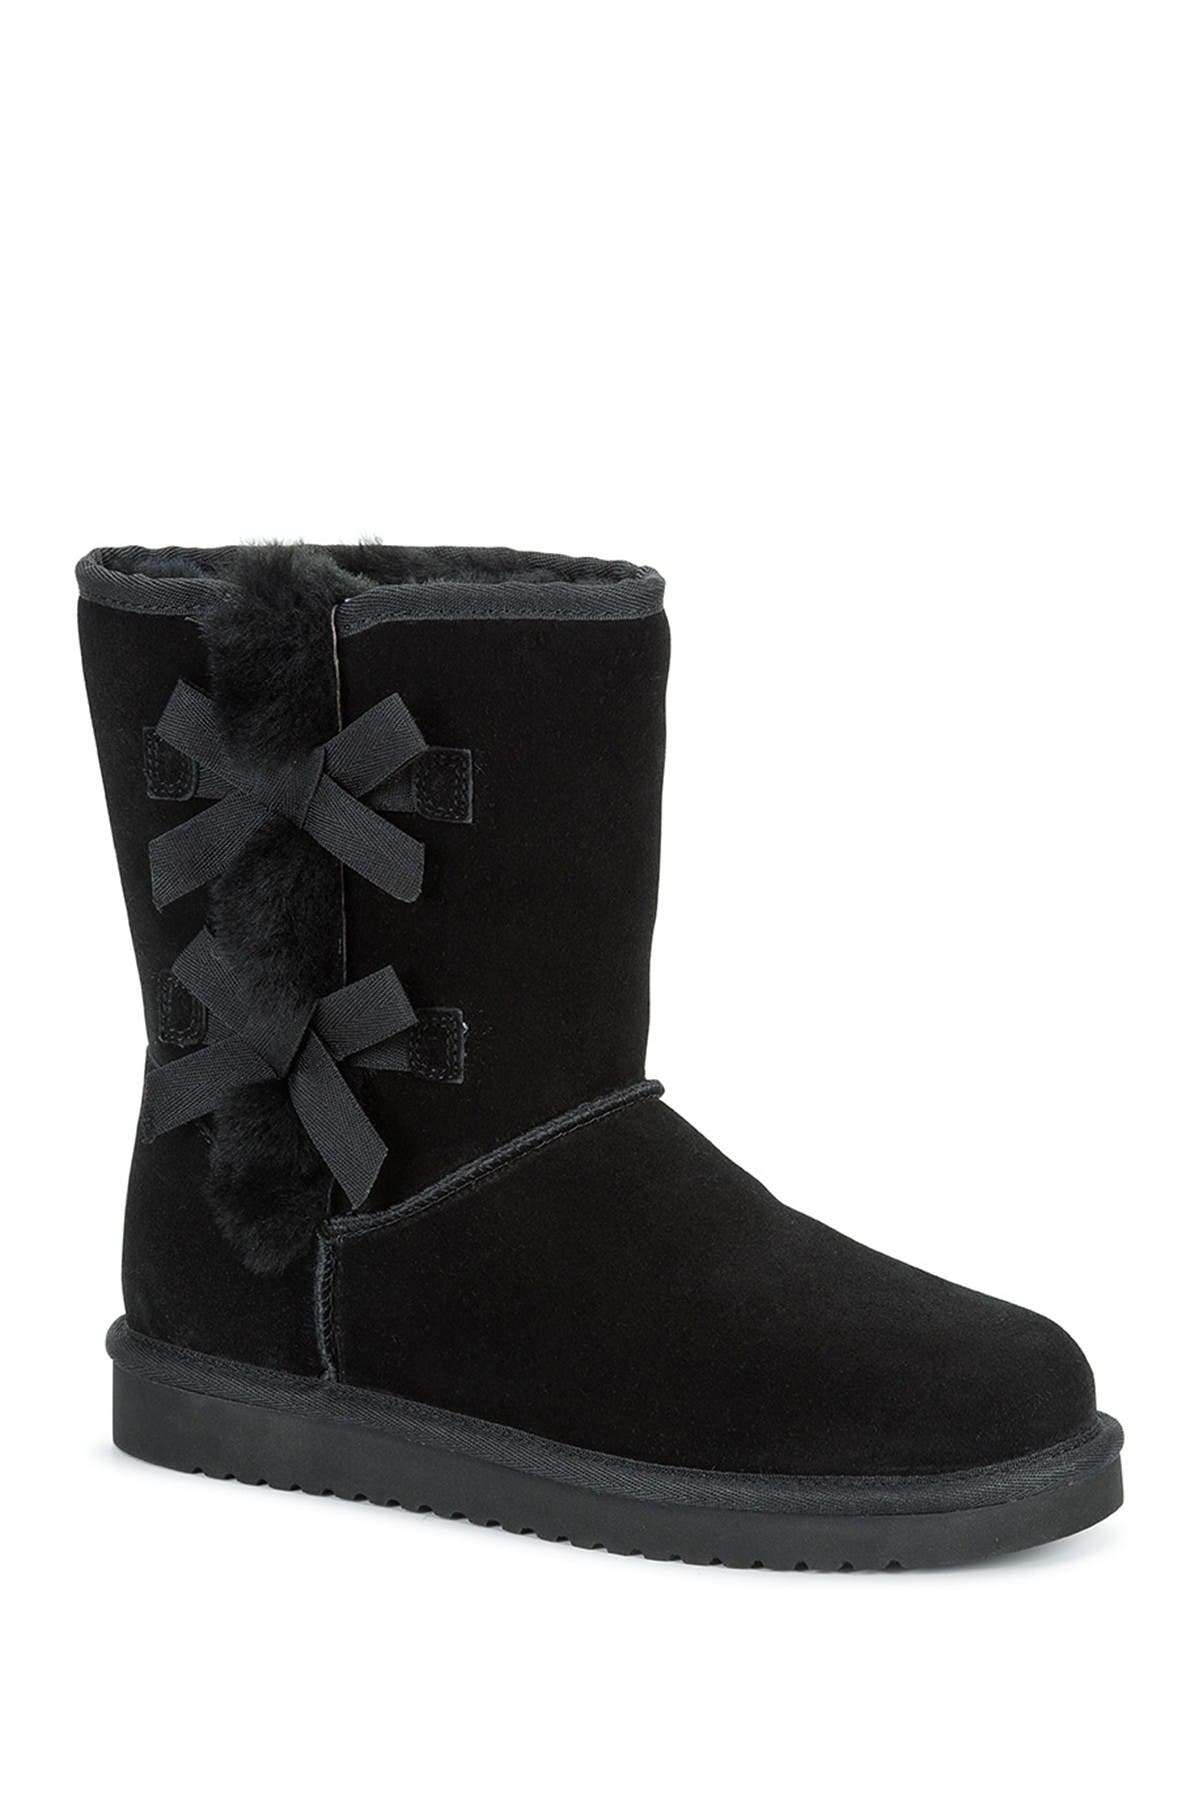 Image of KOOLABURRA BY UGG Victoria Short Genuine Shearling & Faux Fur Boot